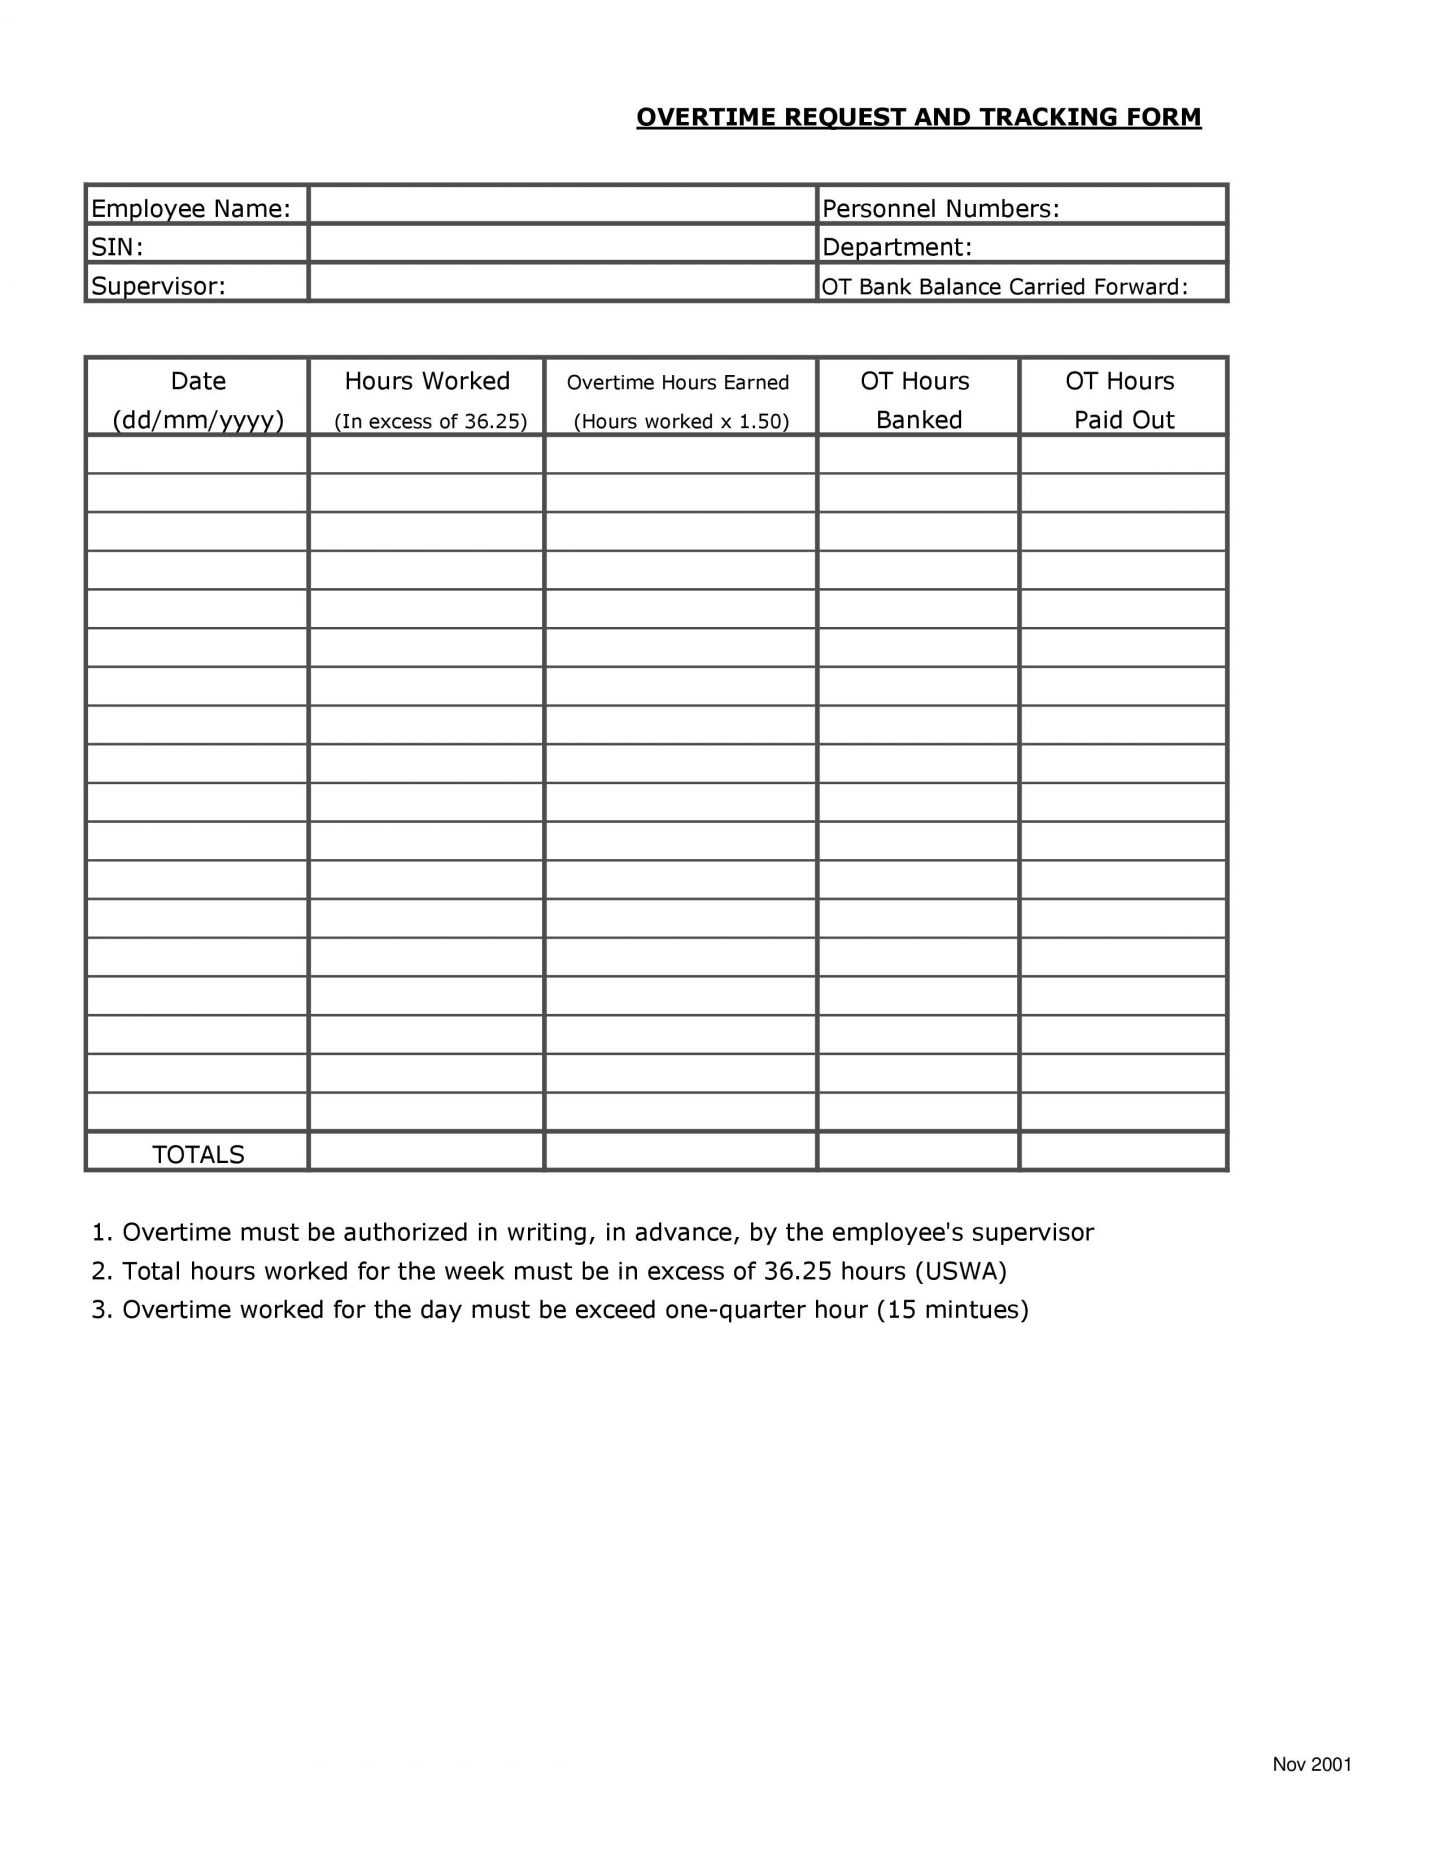 Employee Overtime Tracking Spreadsheet With Track Your Spending Spreadsheet Also Employee Overtime Tracking